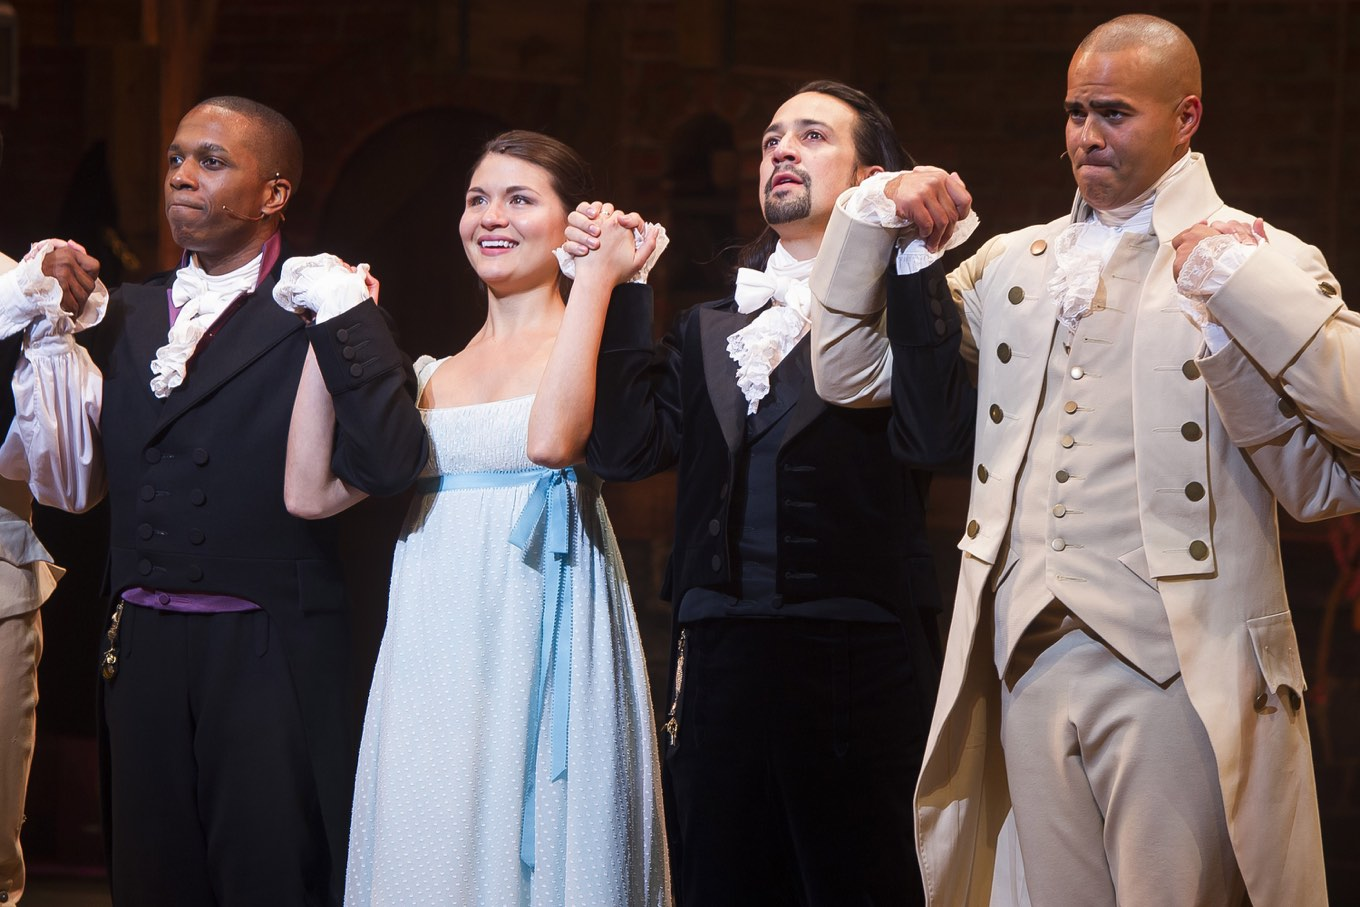 American History Gets Inspiring Hip Hop Makeover in Broadway Hit Hamilton